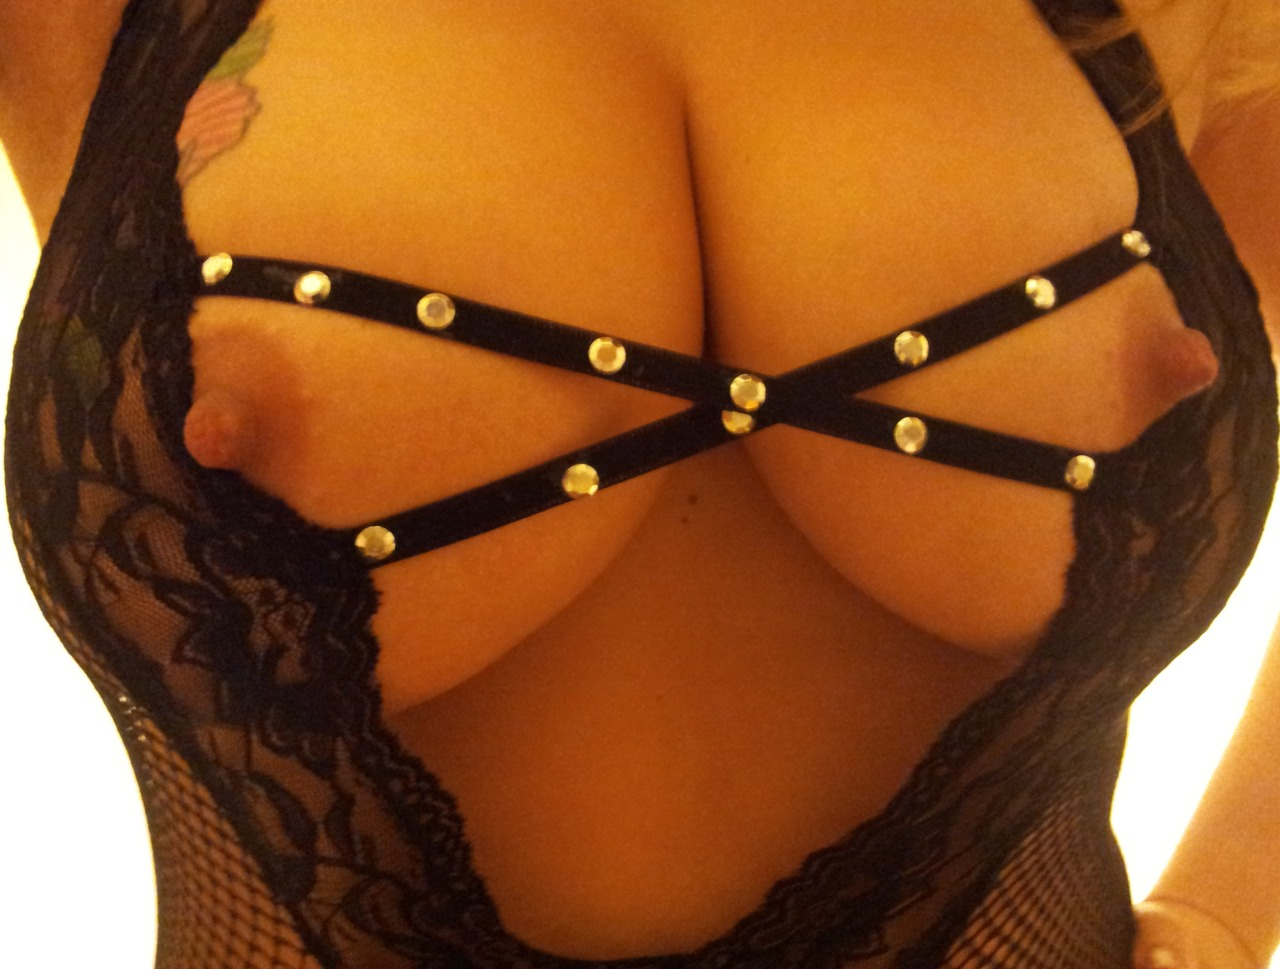 naughtynicegirl69:  Getting a little nippley in here!!!;0